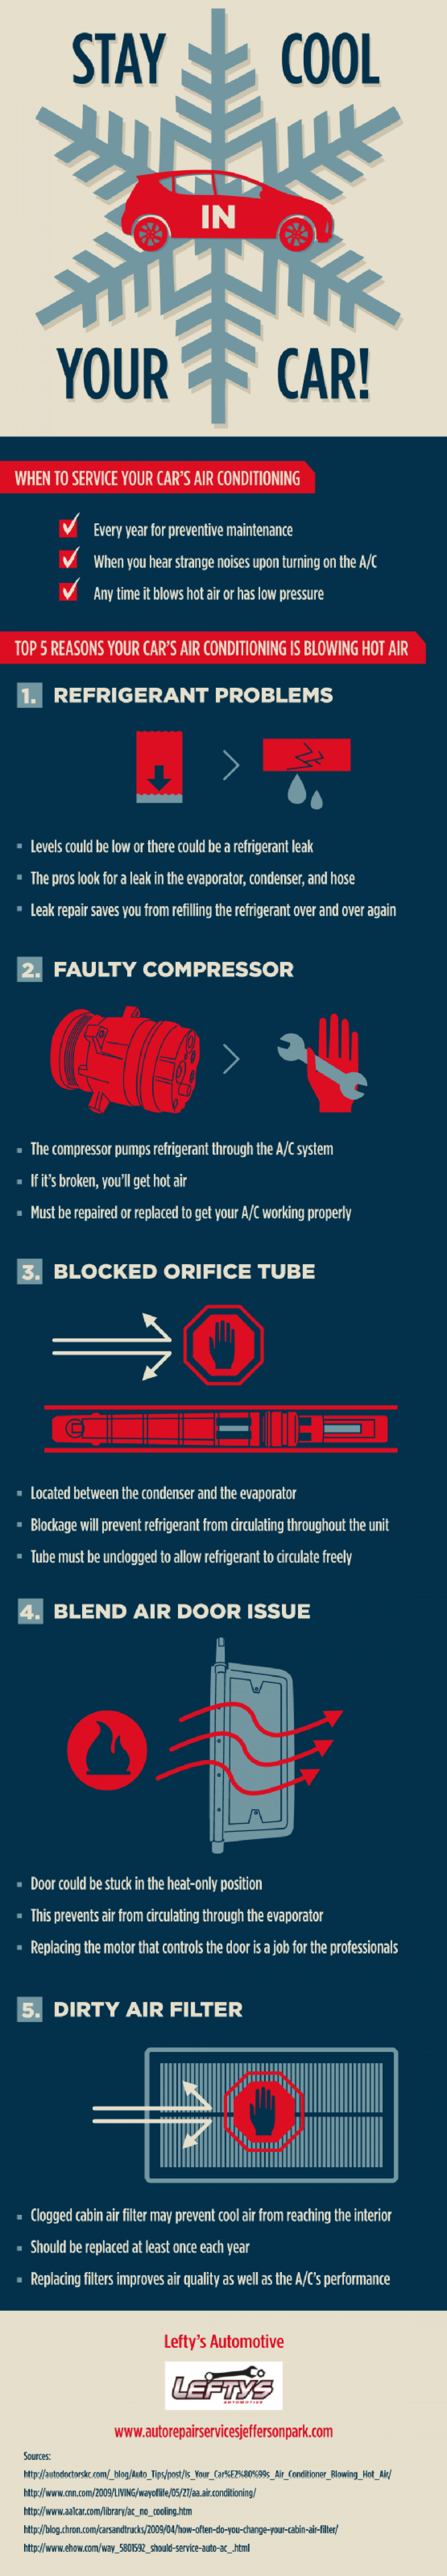 Stay Cool in Your Car! Infographic